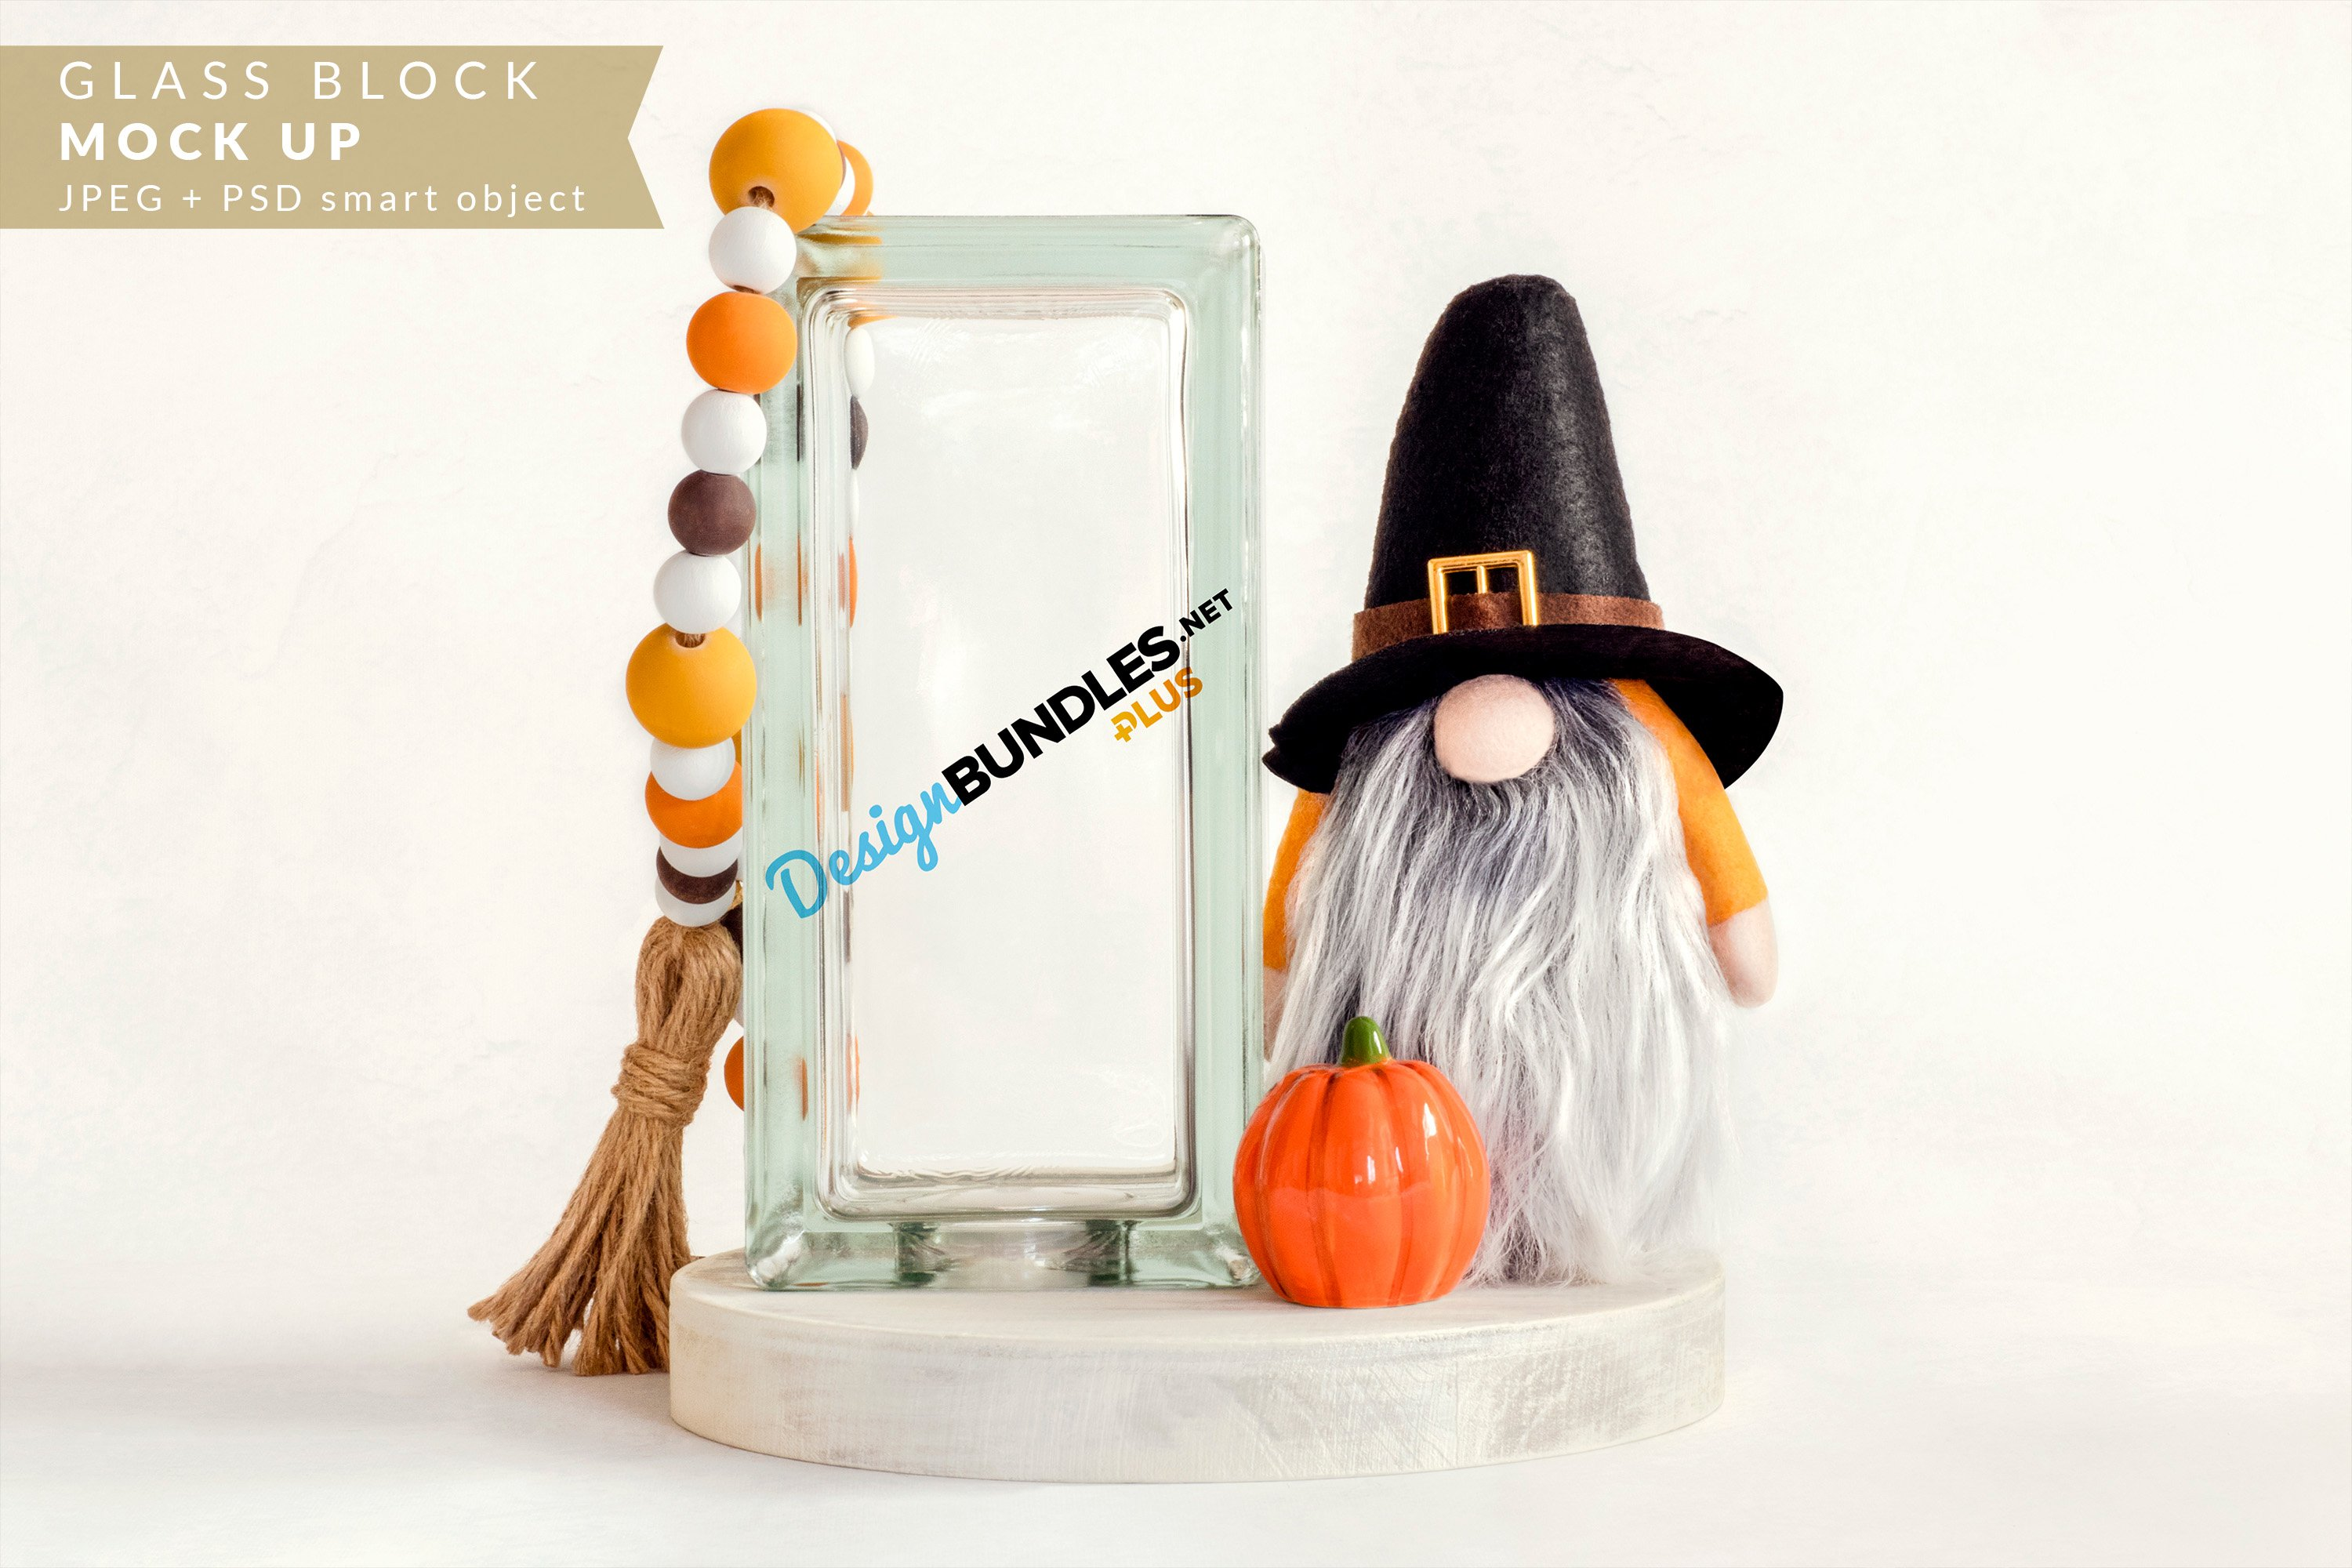 Glass Block Mock up example image 1